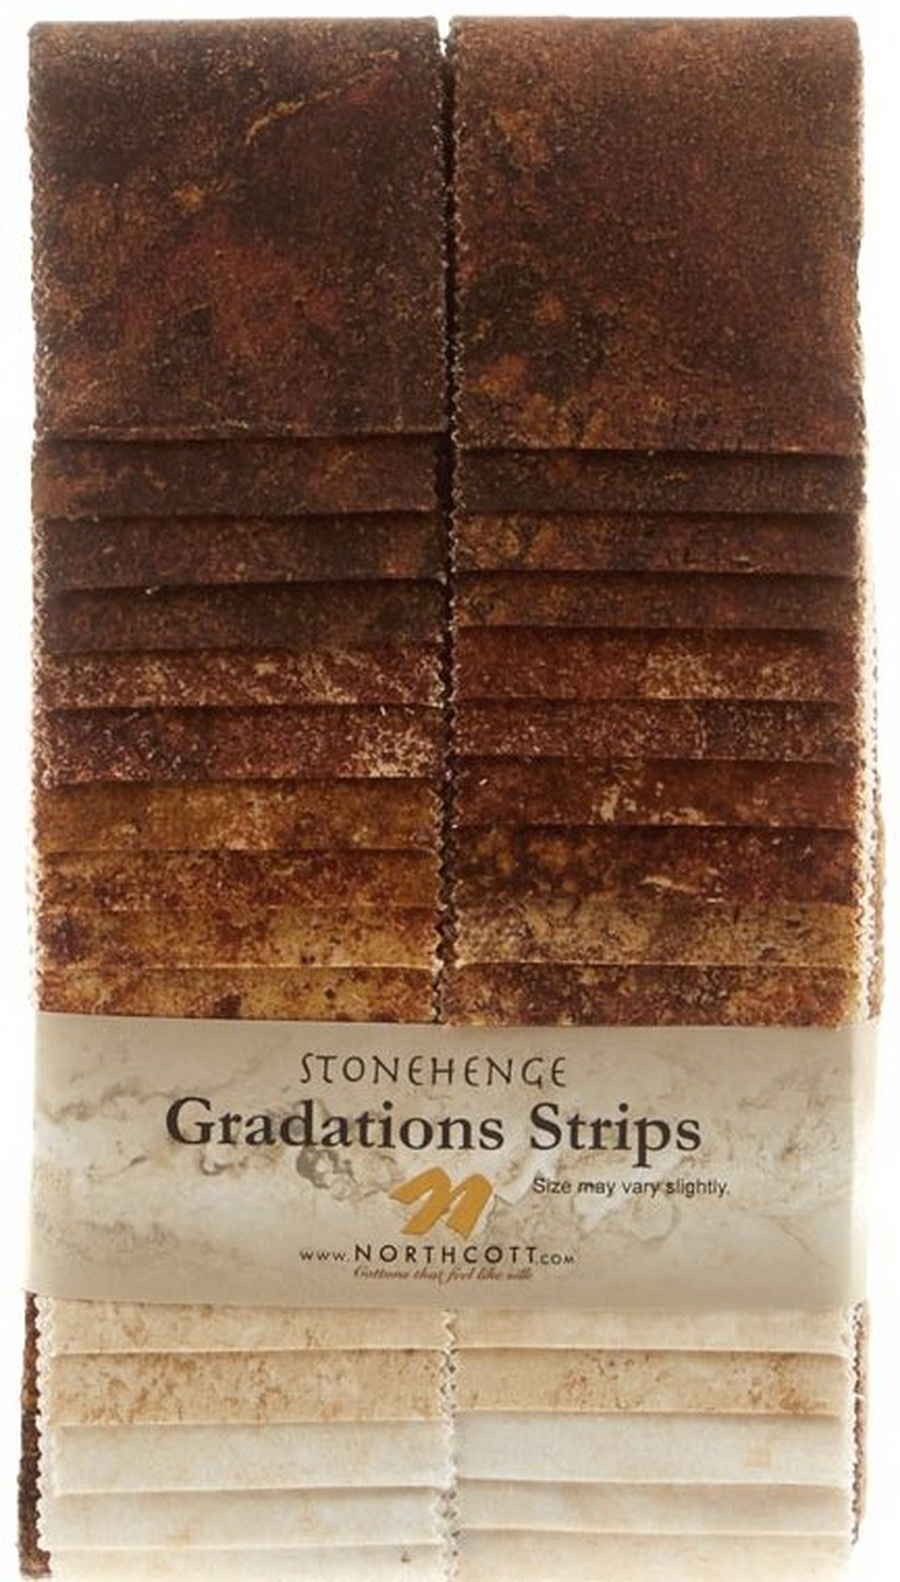 Stonehenge Gradations Brights Iron Ore - 2.5 inch wide Strips 40 Pieces